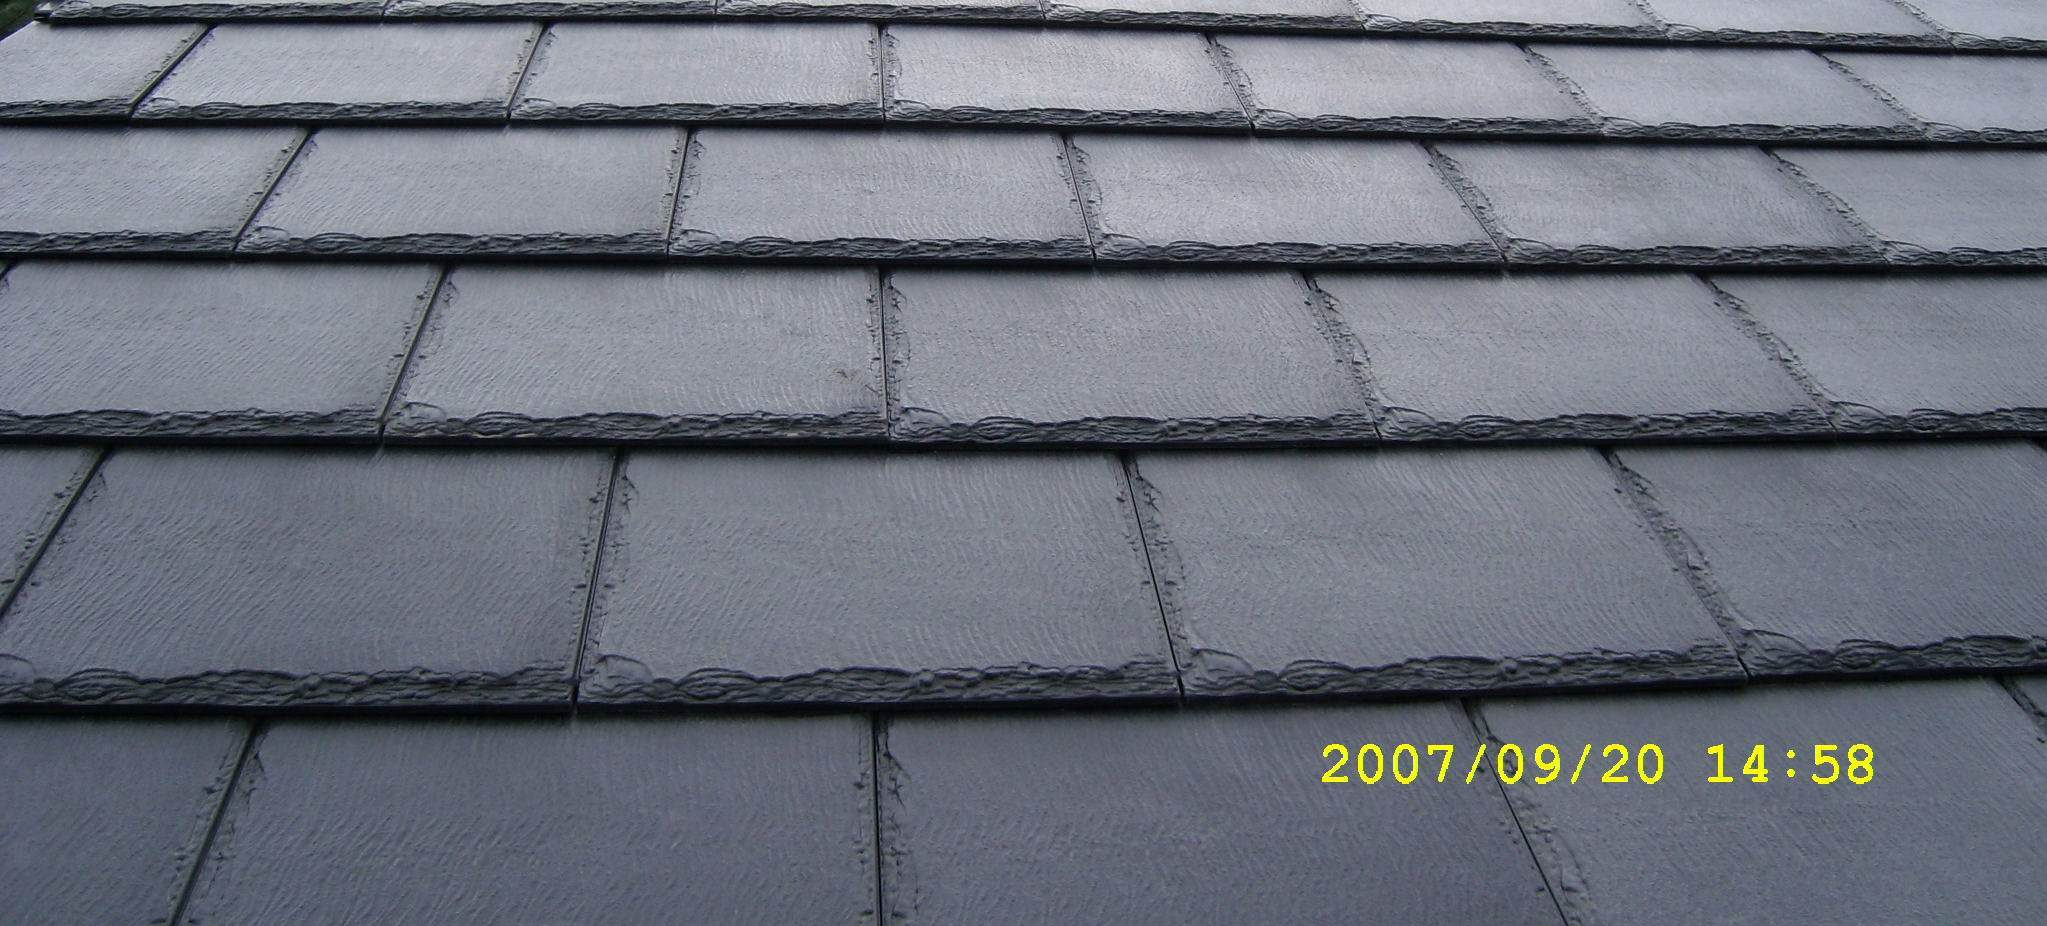 stone roof slates weight loss